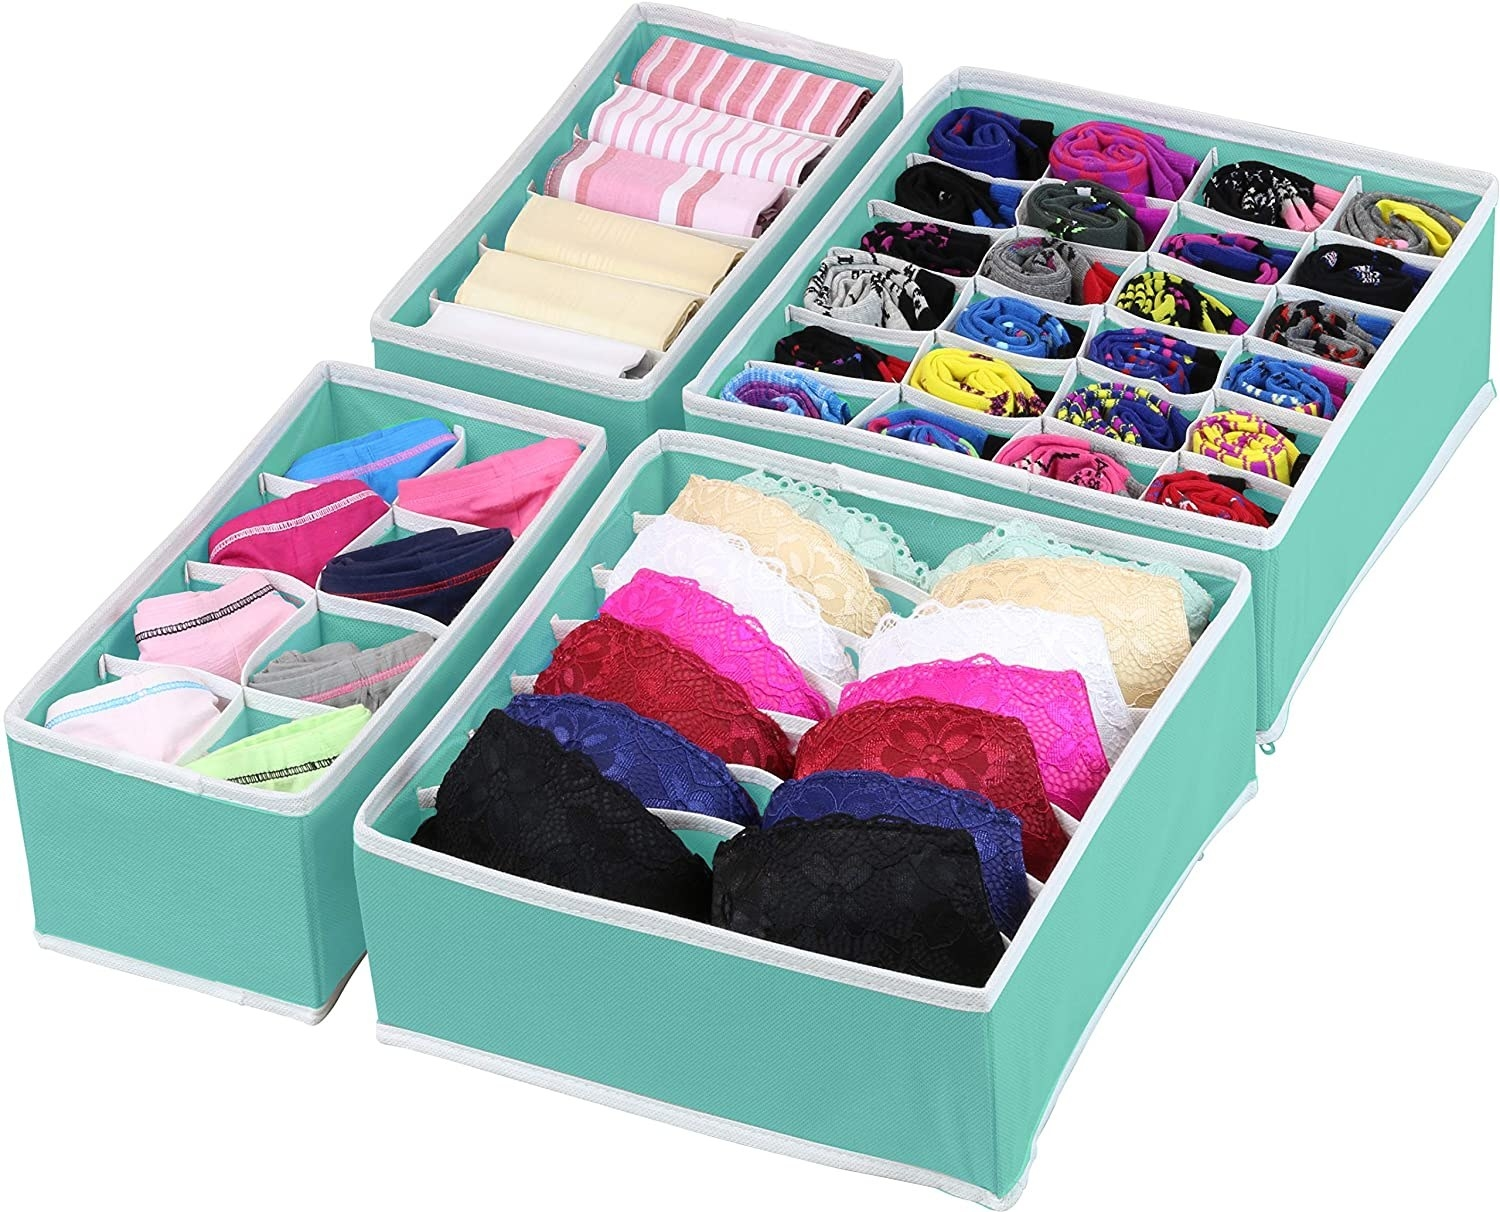 the drawer inserts organizing underwear bras and other clothing